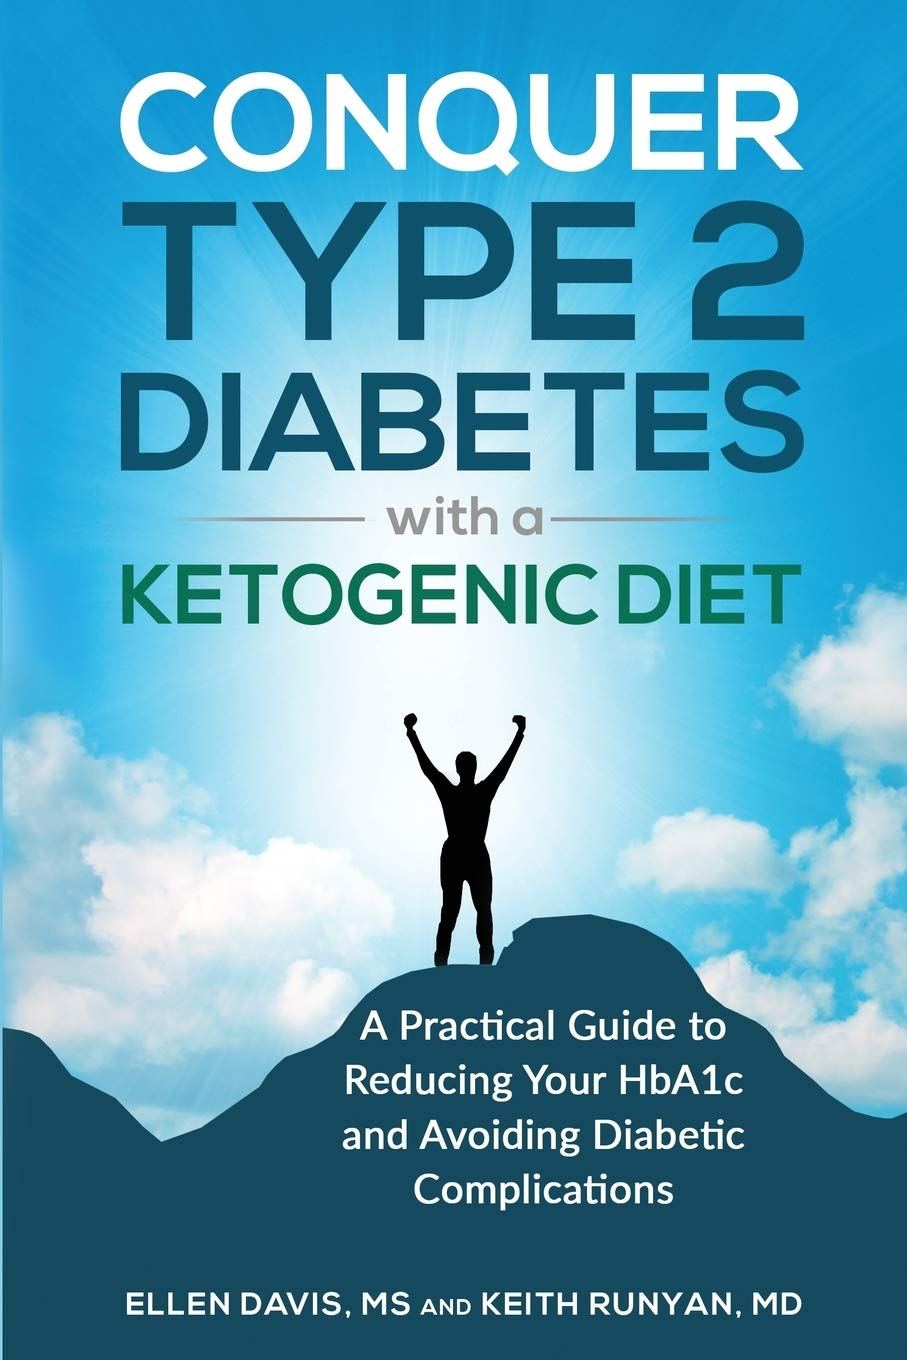 ketogenic diet and diabetes type 2